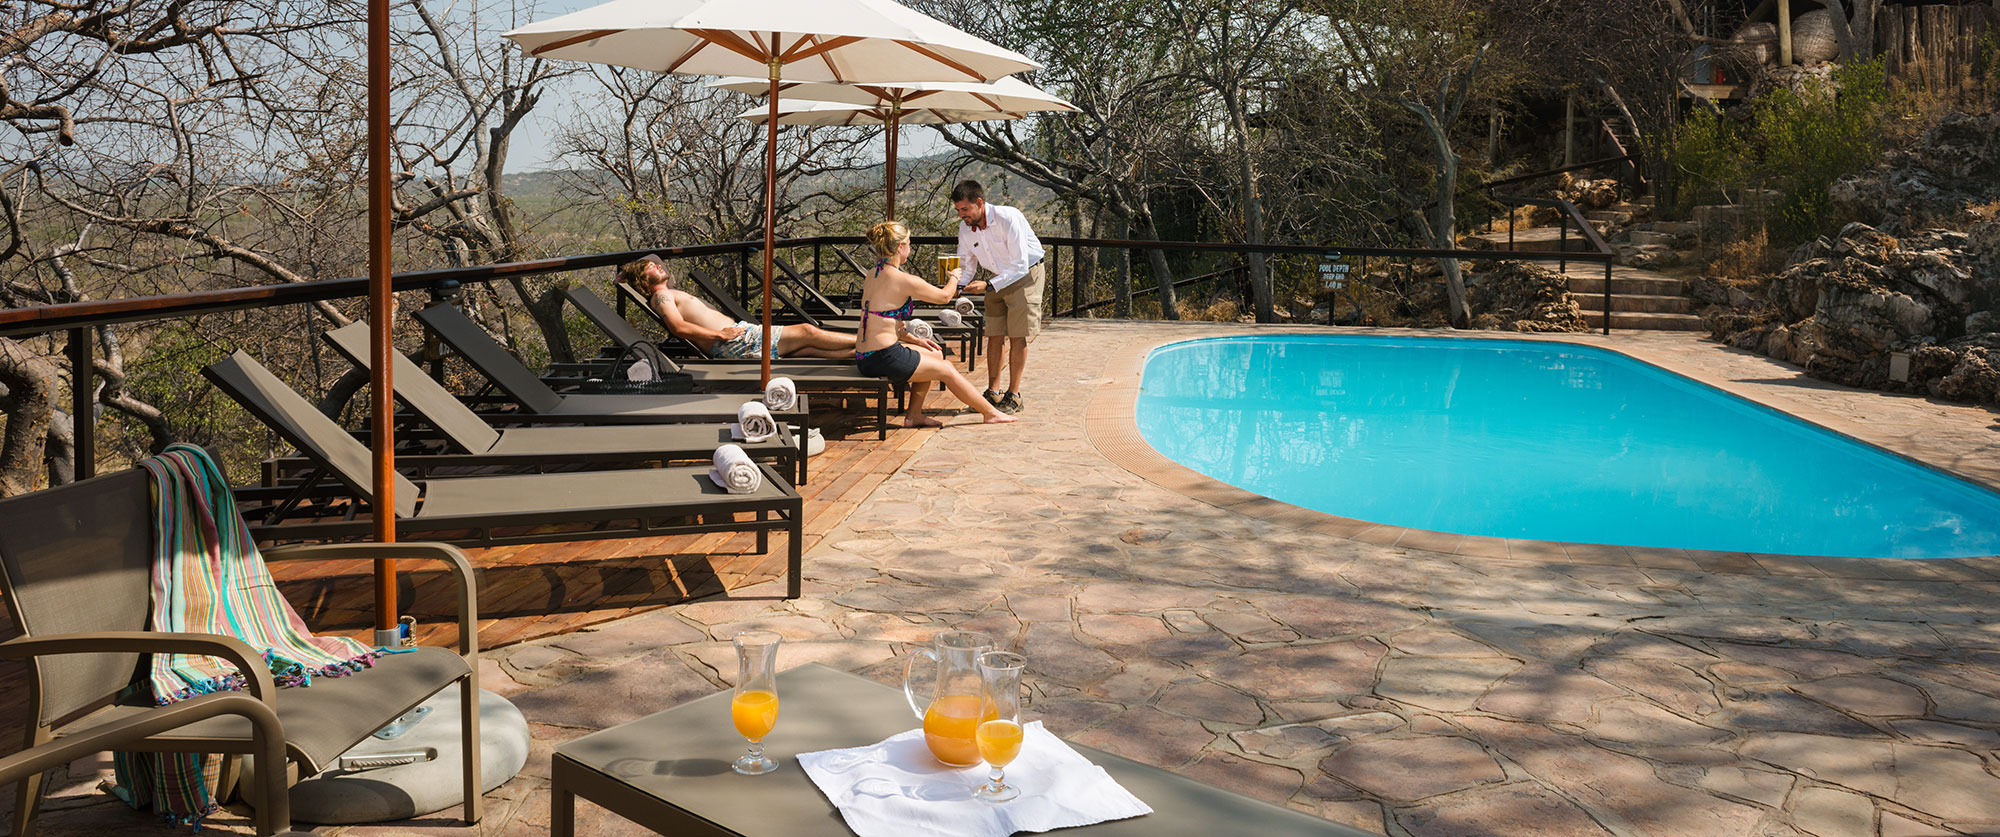 Namibia Etosha Safari - Ongava Lodge Pool